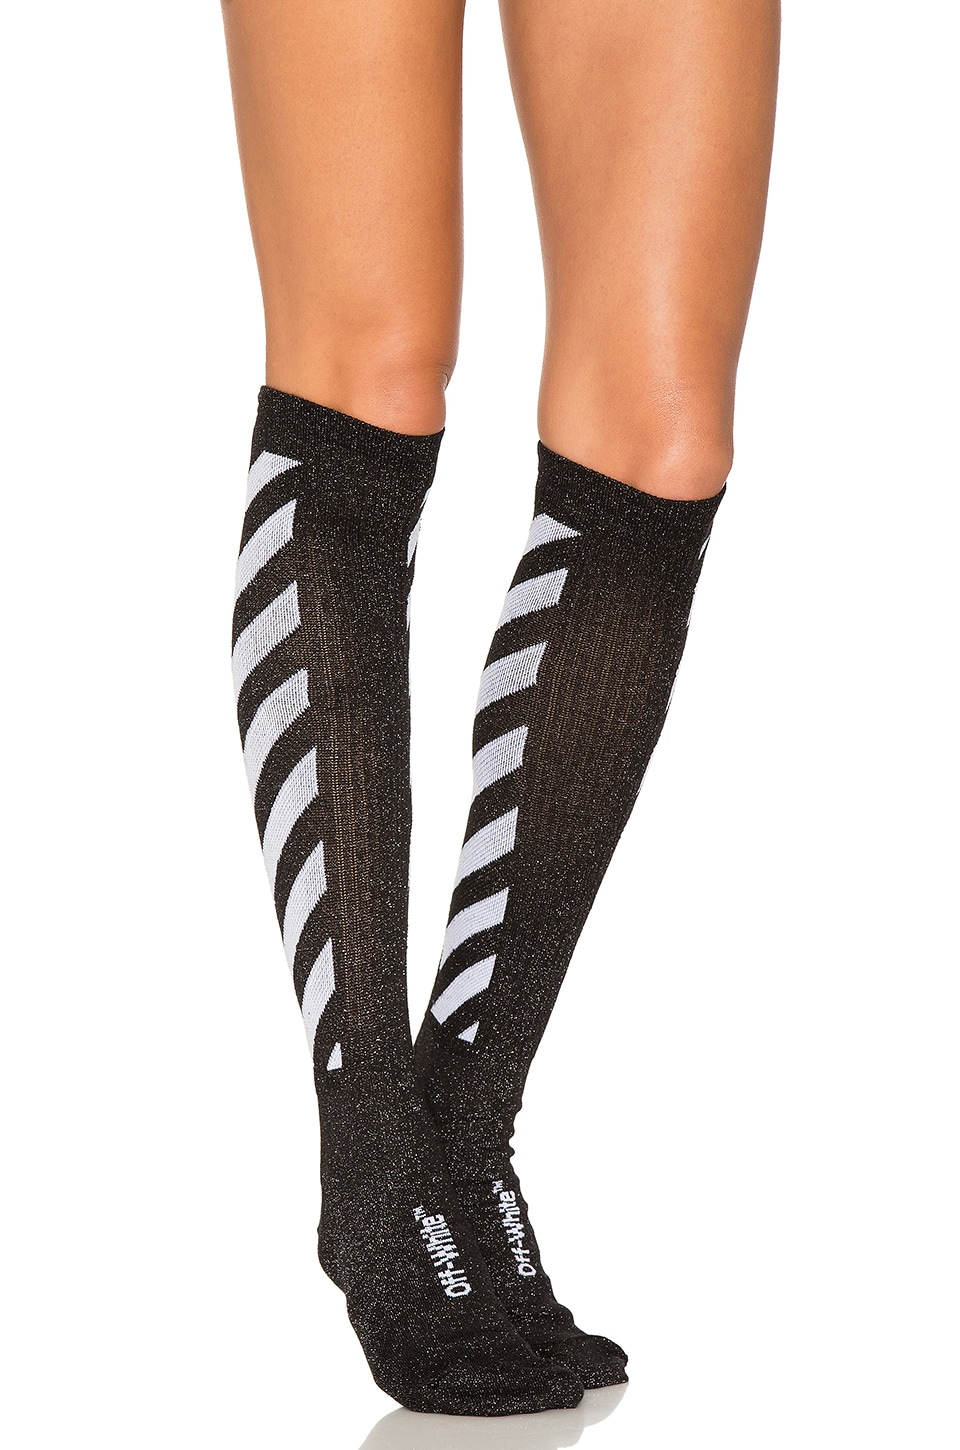 OFF-WHITE Shiny Socks in Black